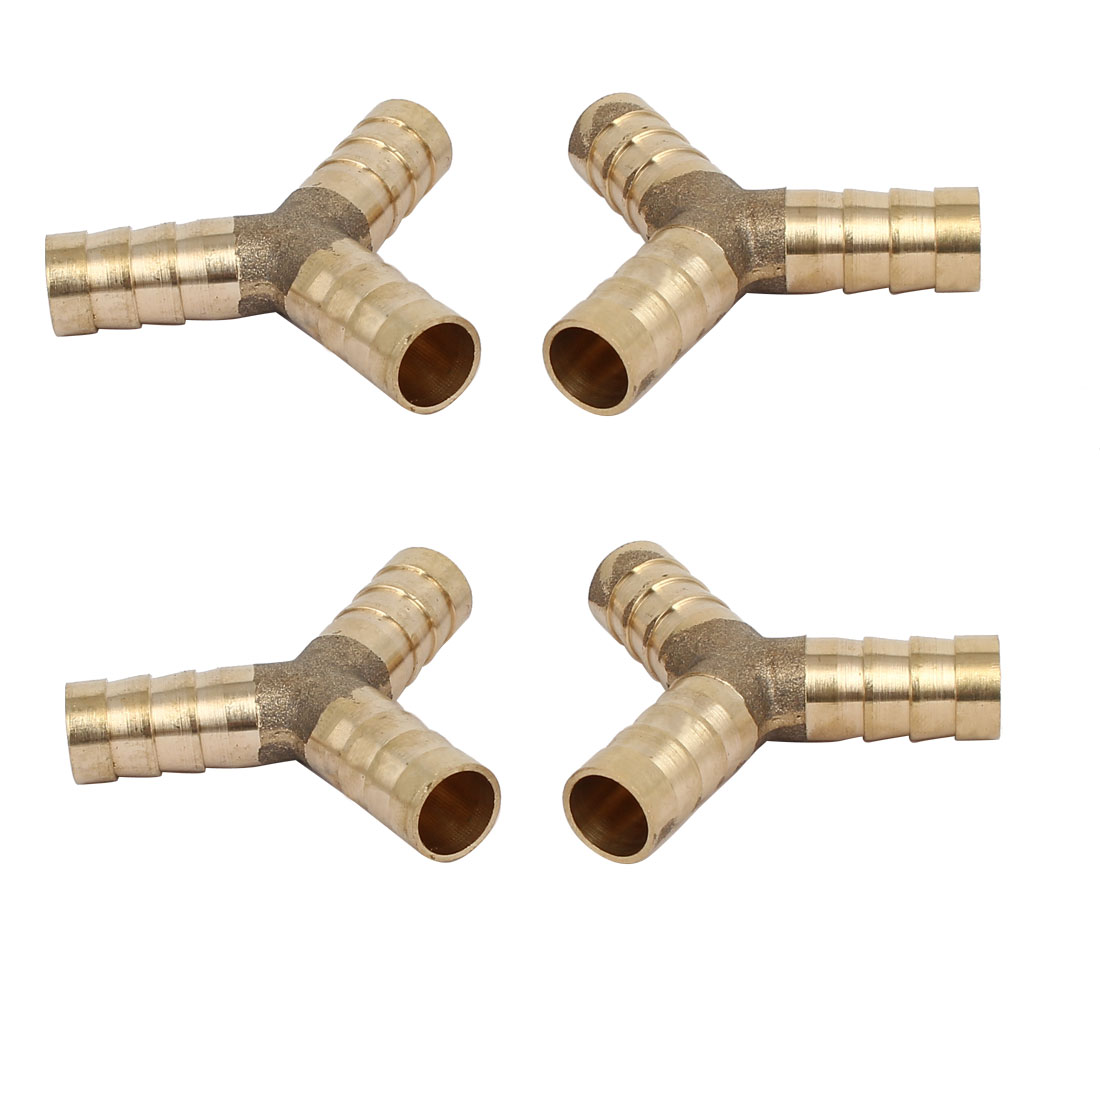 Unique Bargains10mm Y Shaped 3 Way Hose Barb Fittings Pipe Tube Connecting Connectors 4pcs